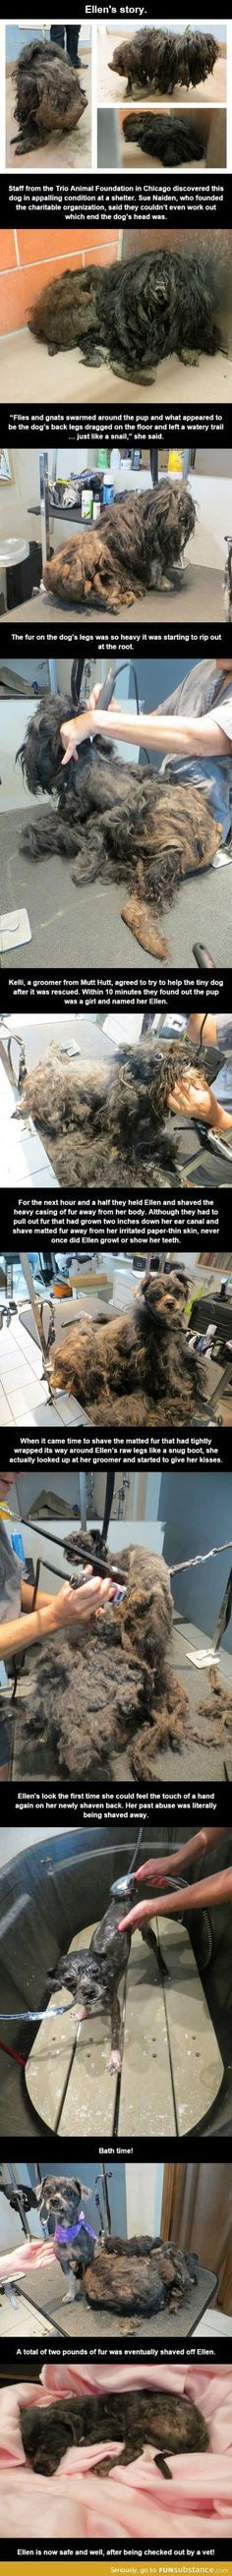 Watch a dog come alive. How anyone could leave a dog in that state :(